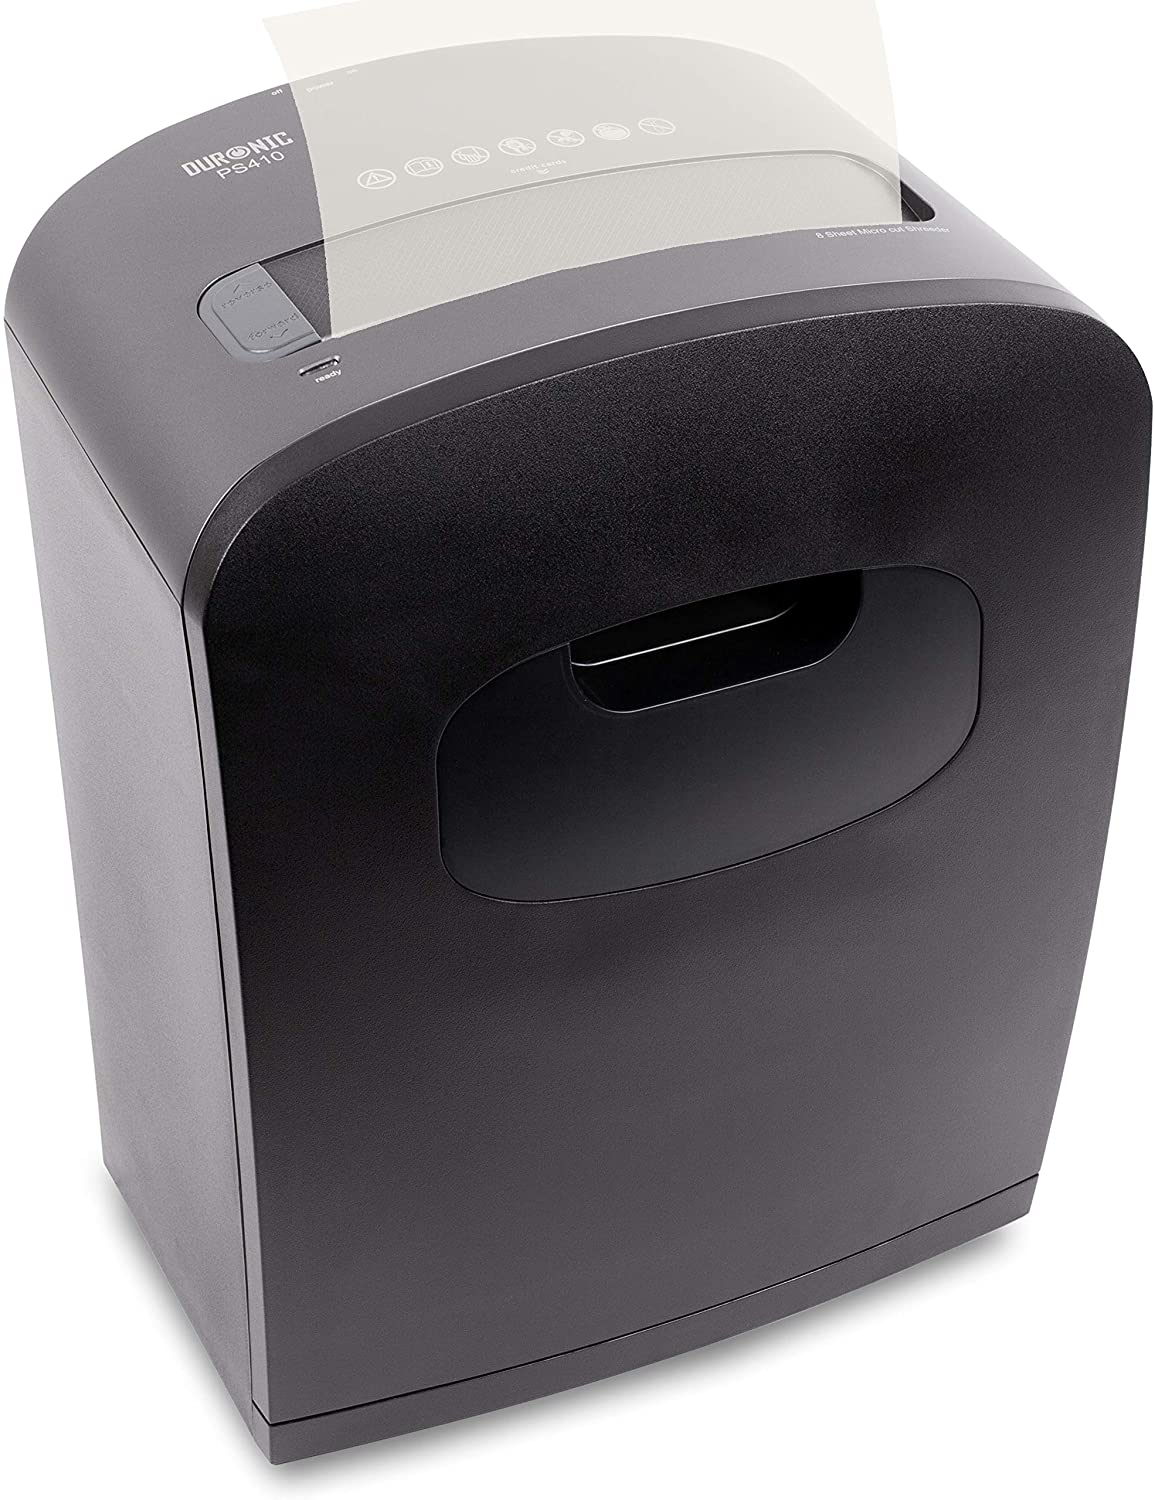 Duronic Paper Shredder PS410, 6-8 A4 Sheets at a Time, Micro Cut, Electric Shredder, 14 Litre Bin uk reviews